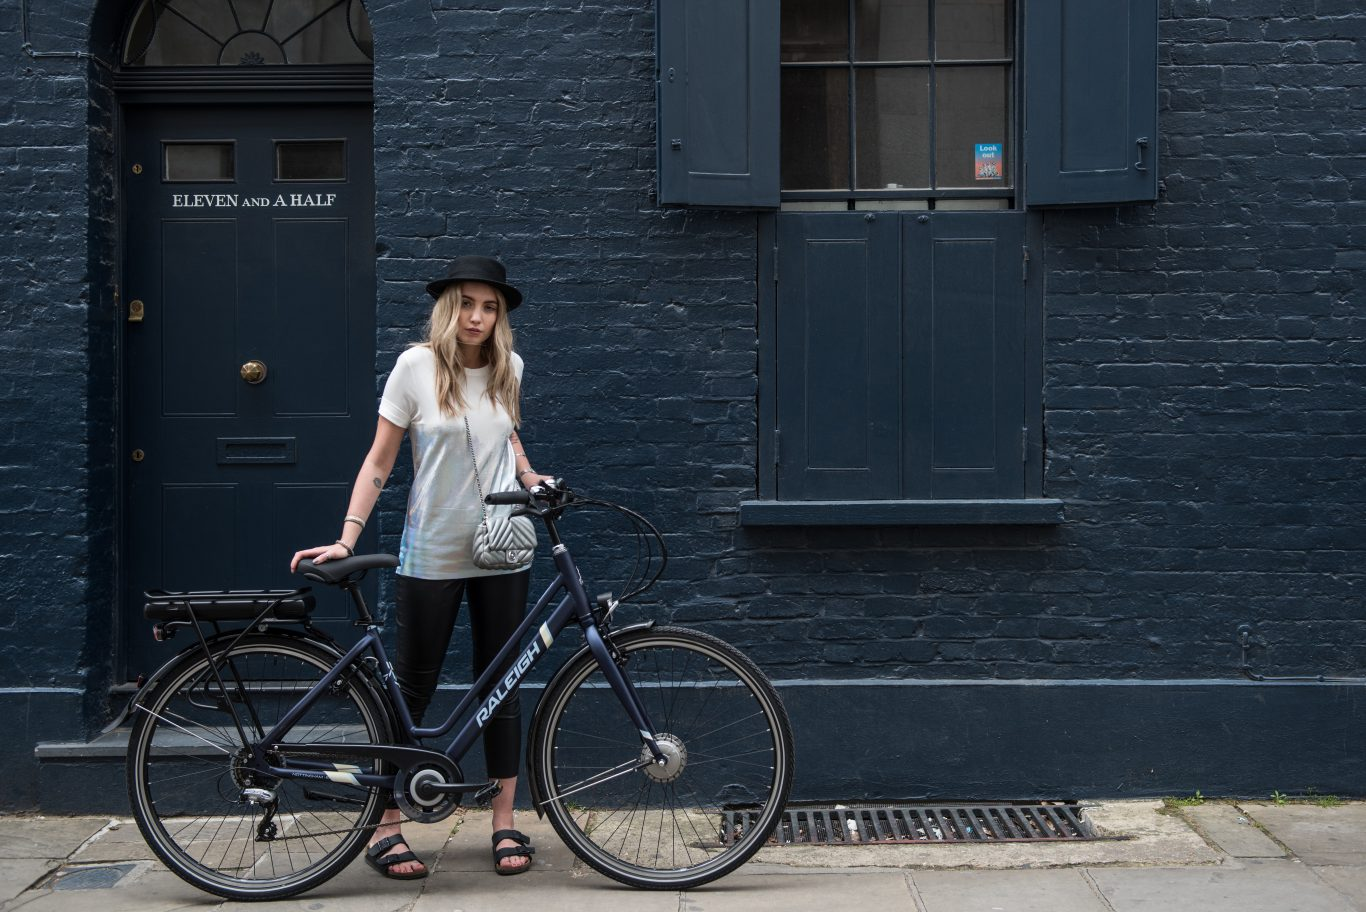 Girl with raleigh bike in front of a blue building